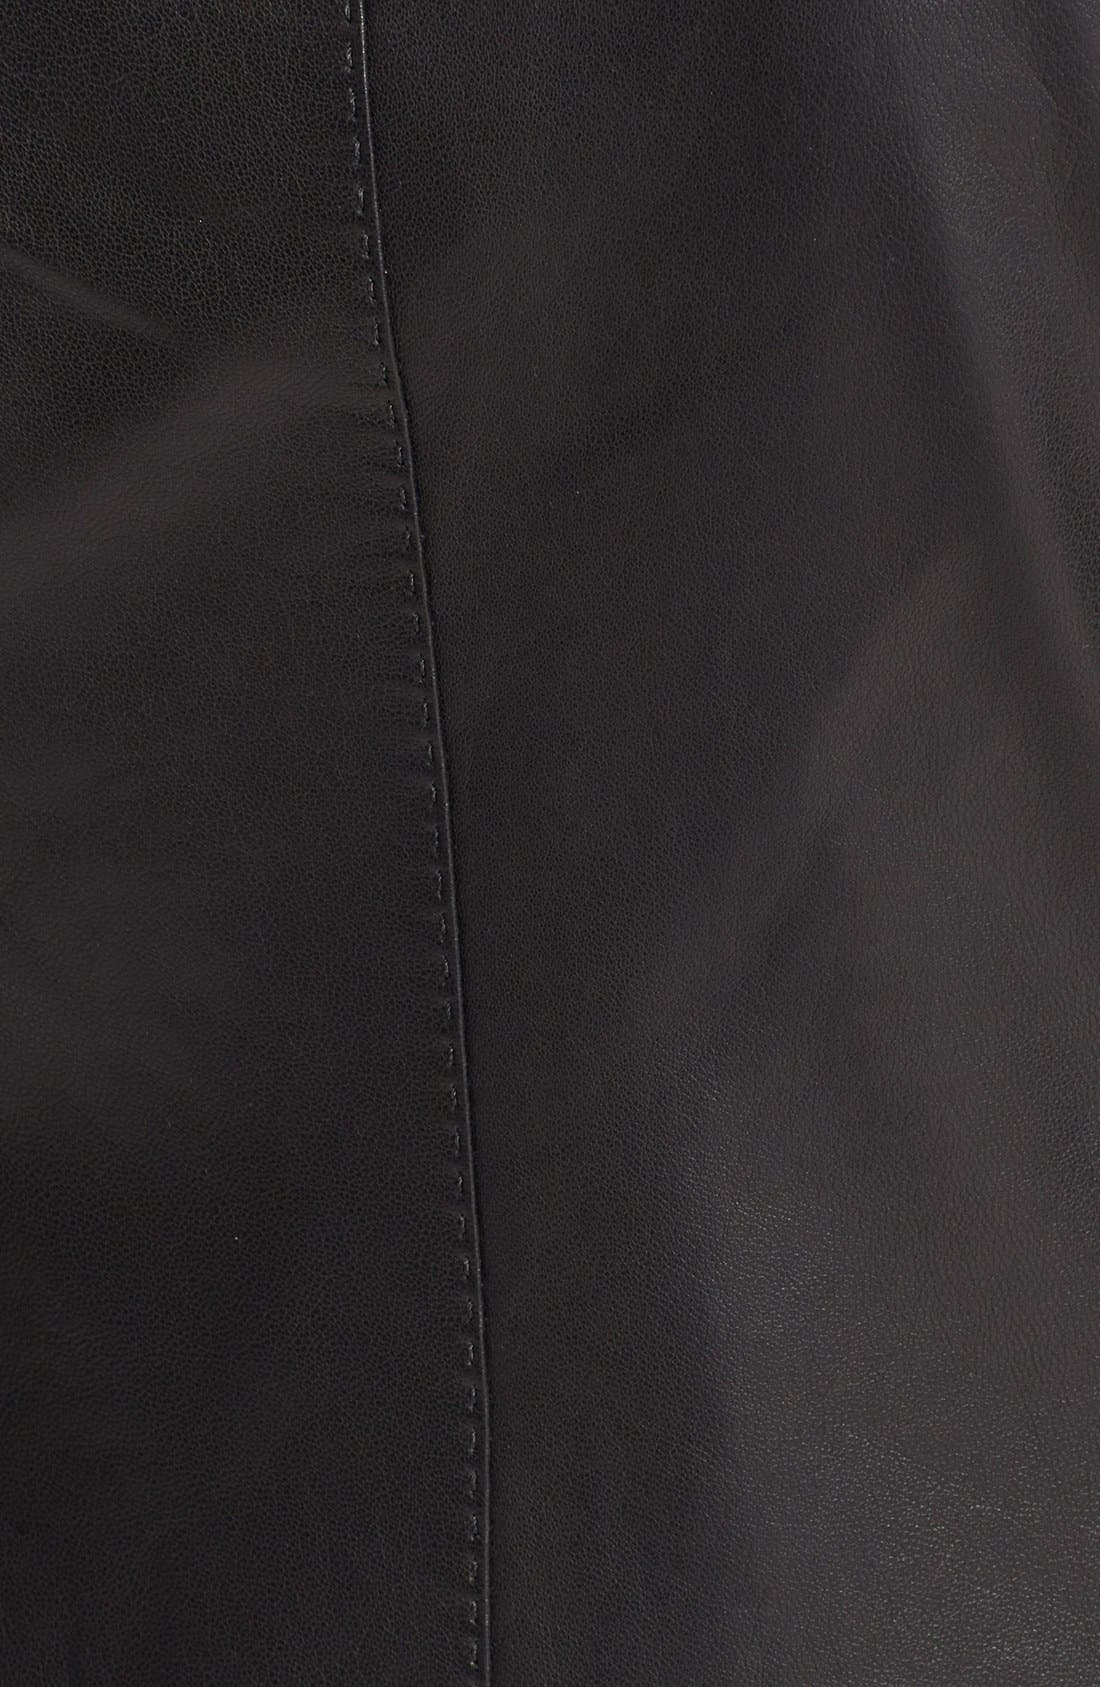 Leather Scuba Jacket,                             Alternate thumbnail 3, color,                             001